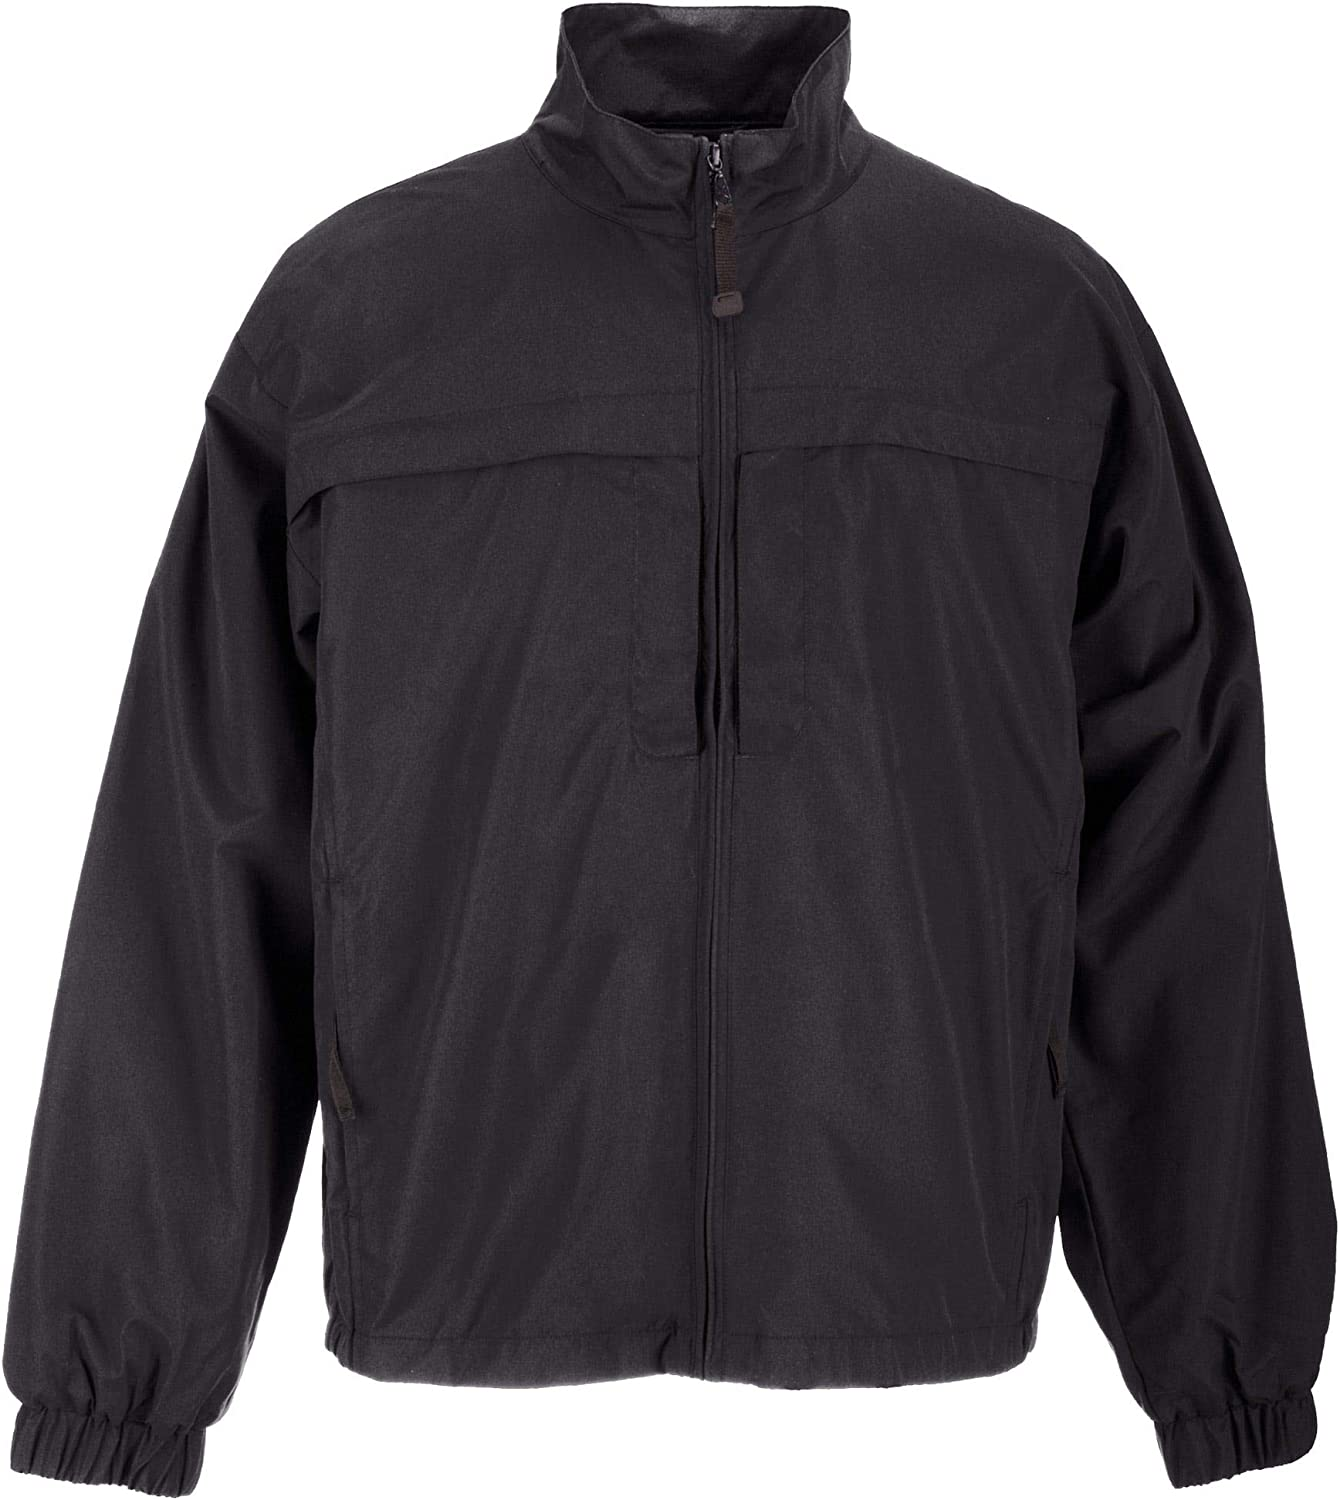 5.11 Tactical Mens Response Lightweight Jacket Ready Pocket Easy-Store Design Style 48016